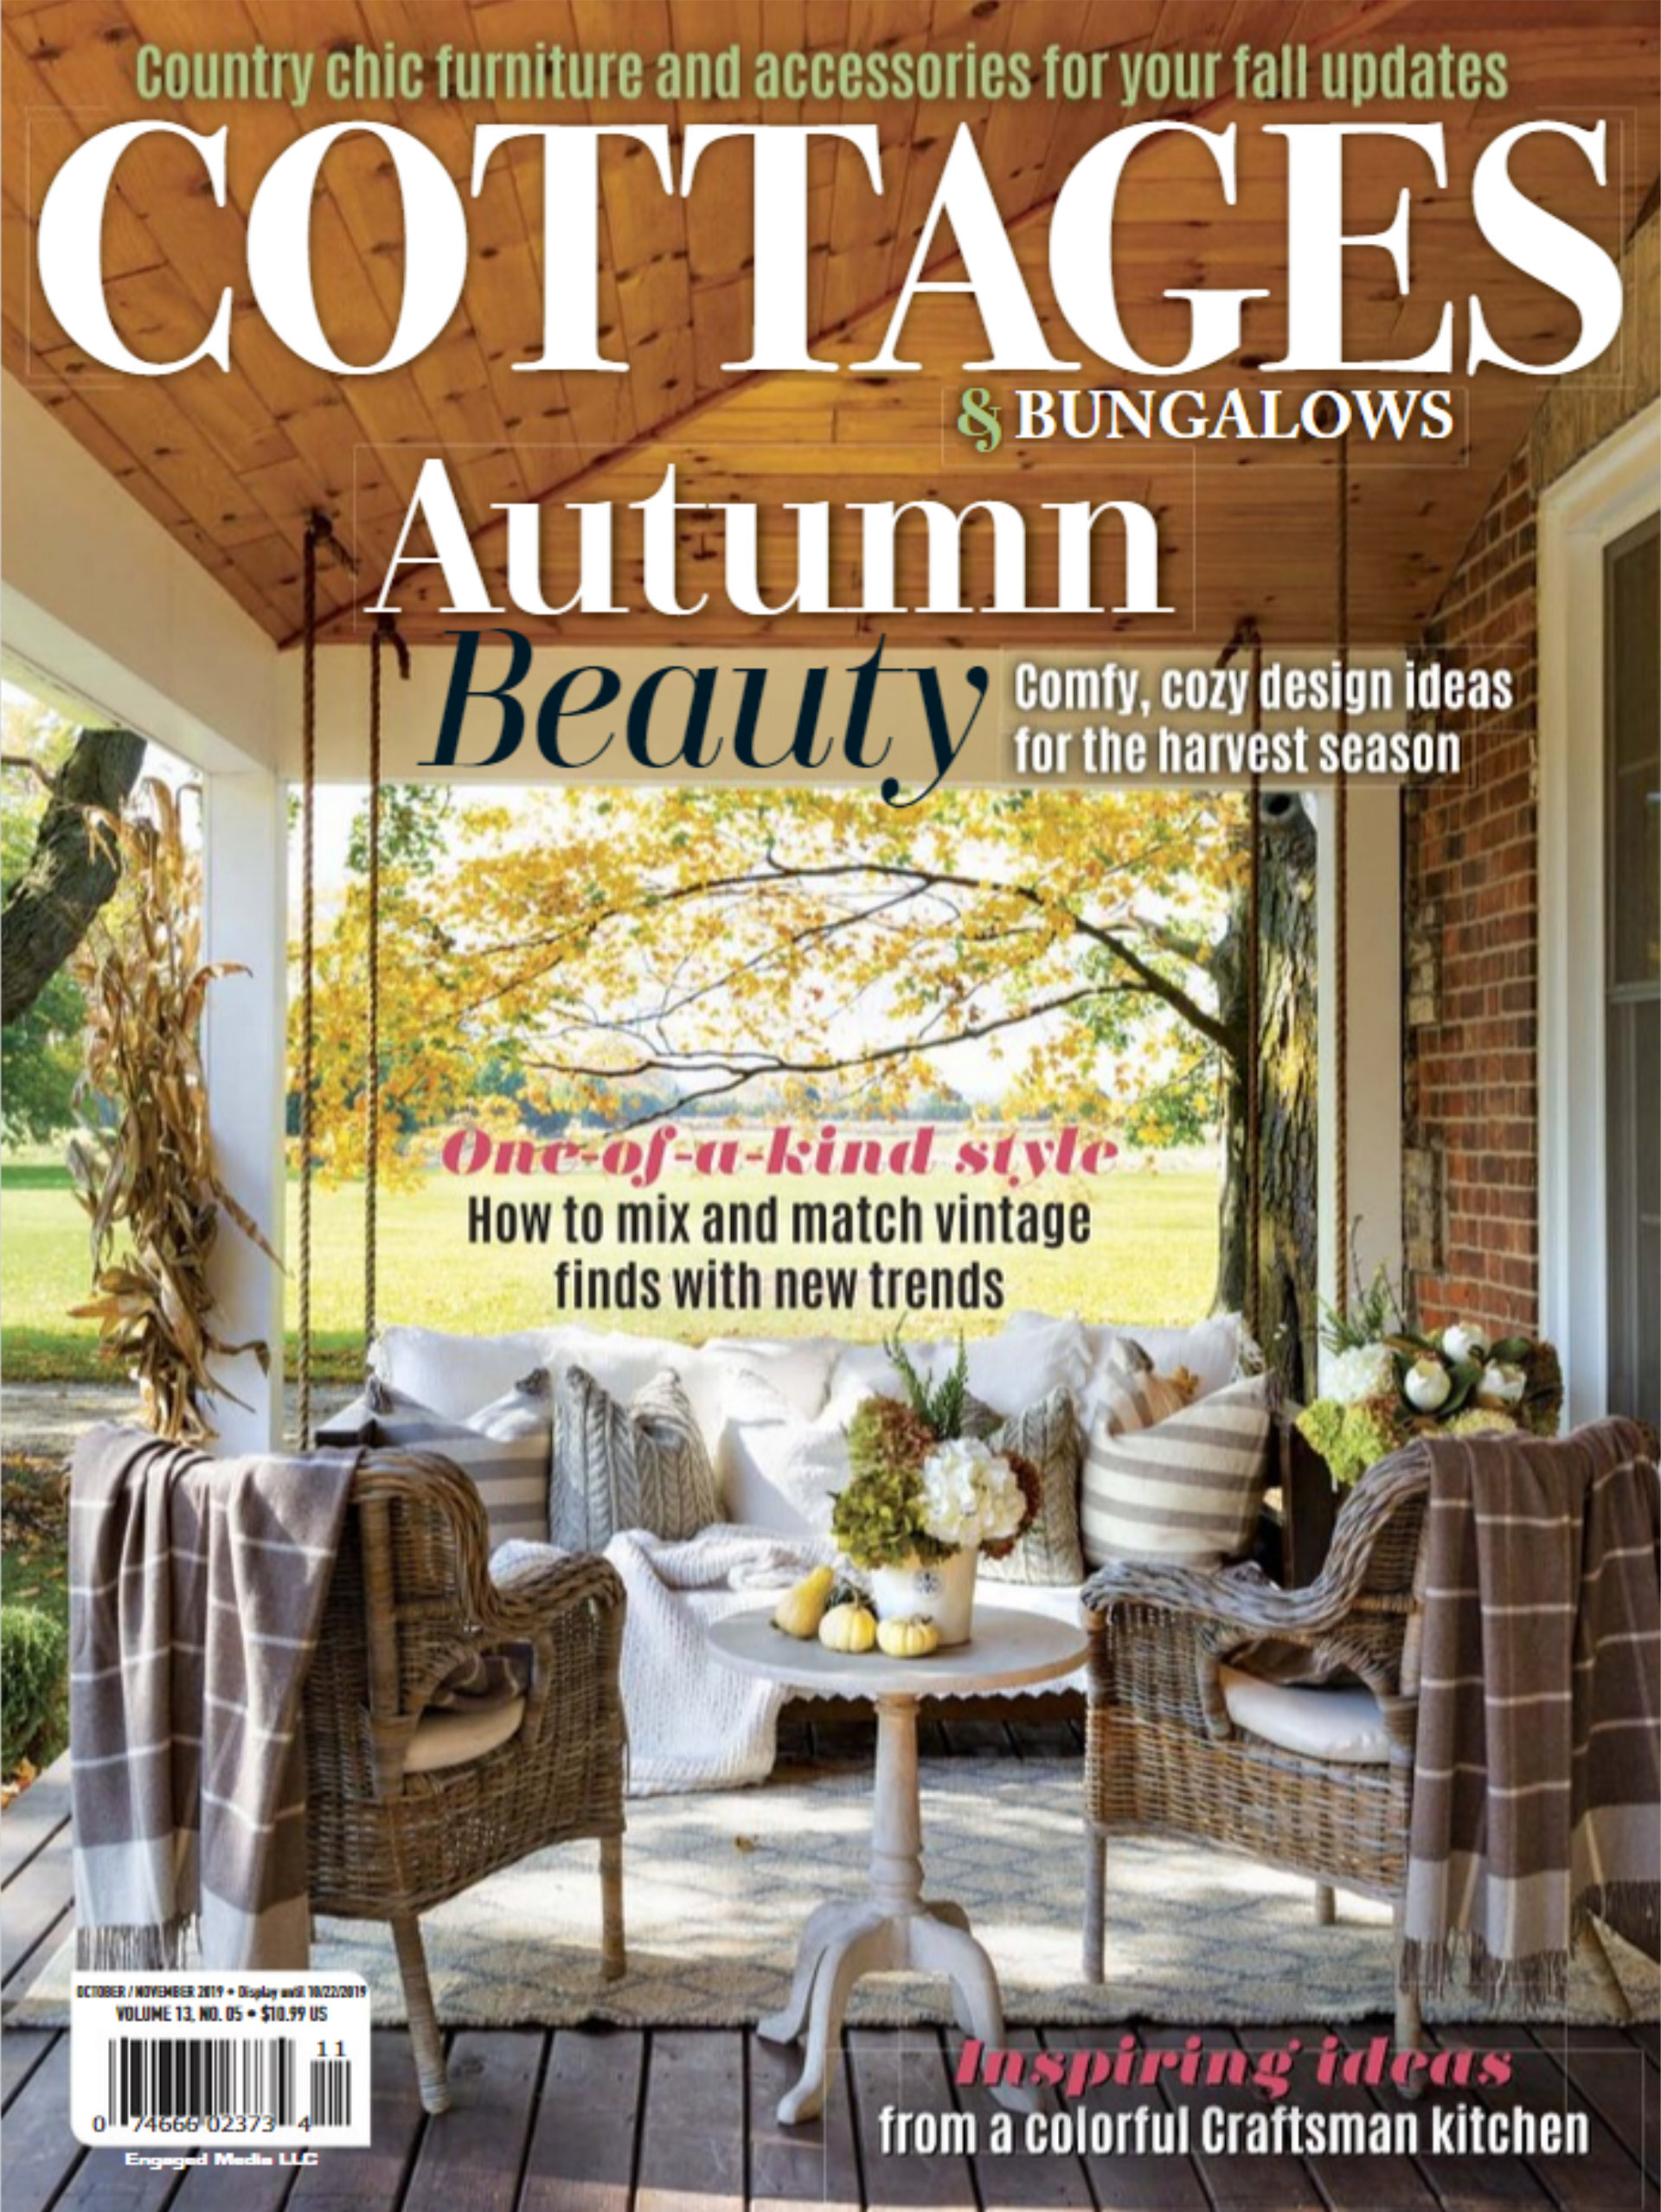 Cottages & Bungalows -